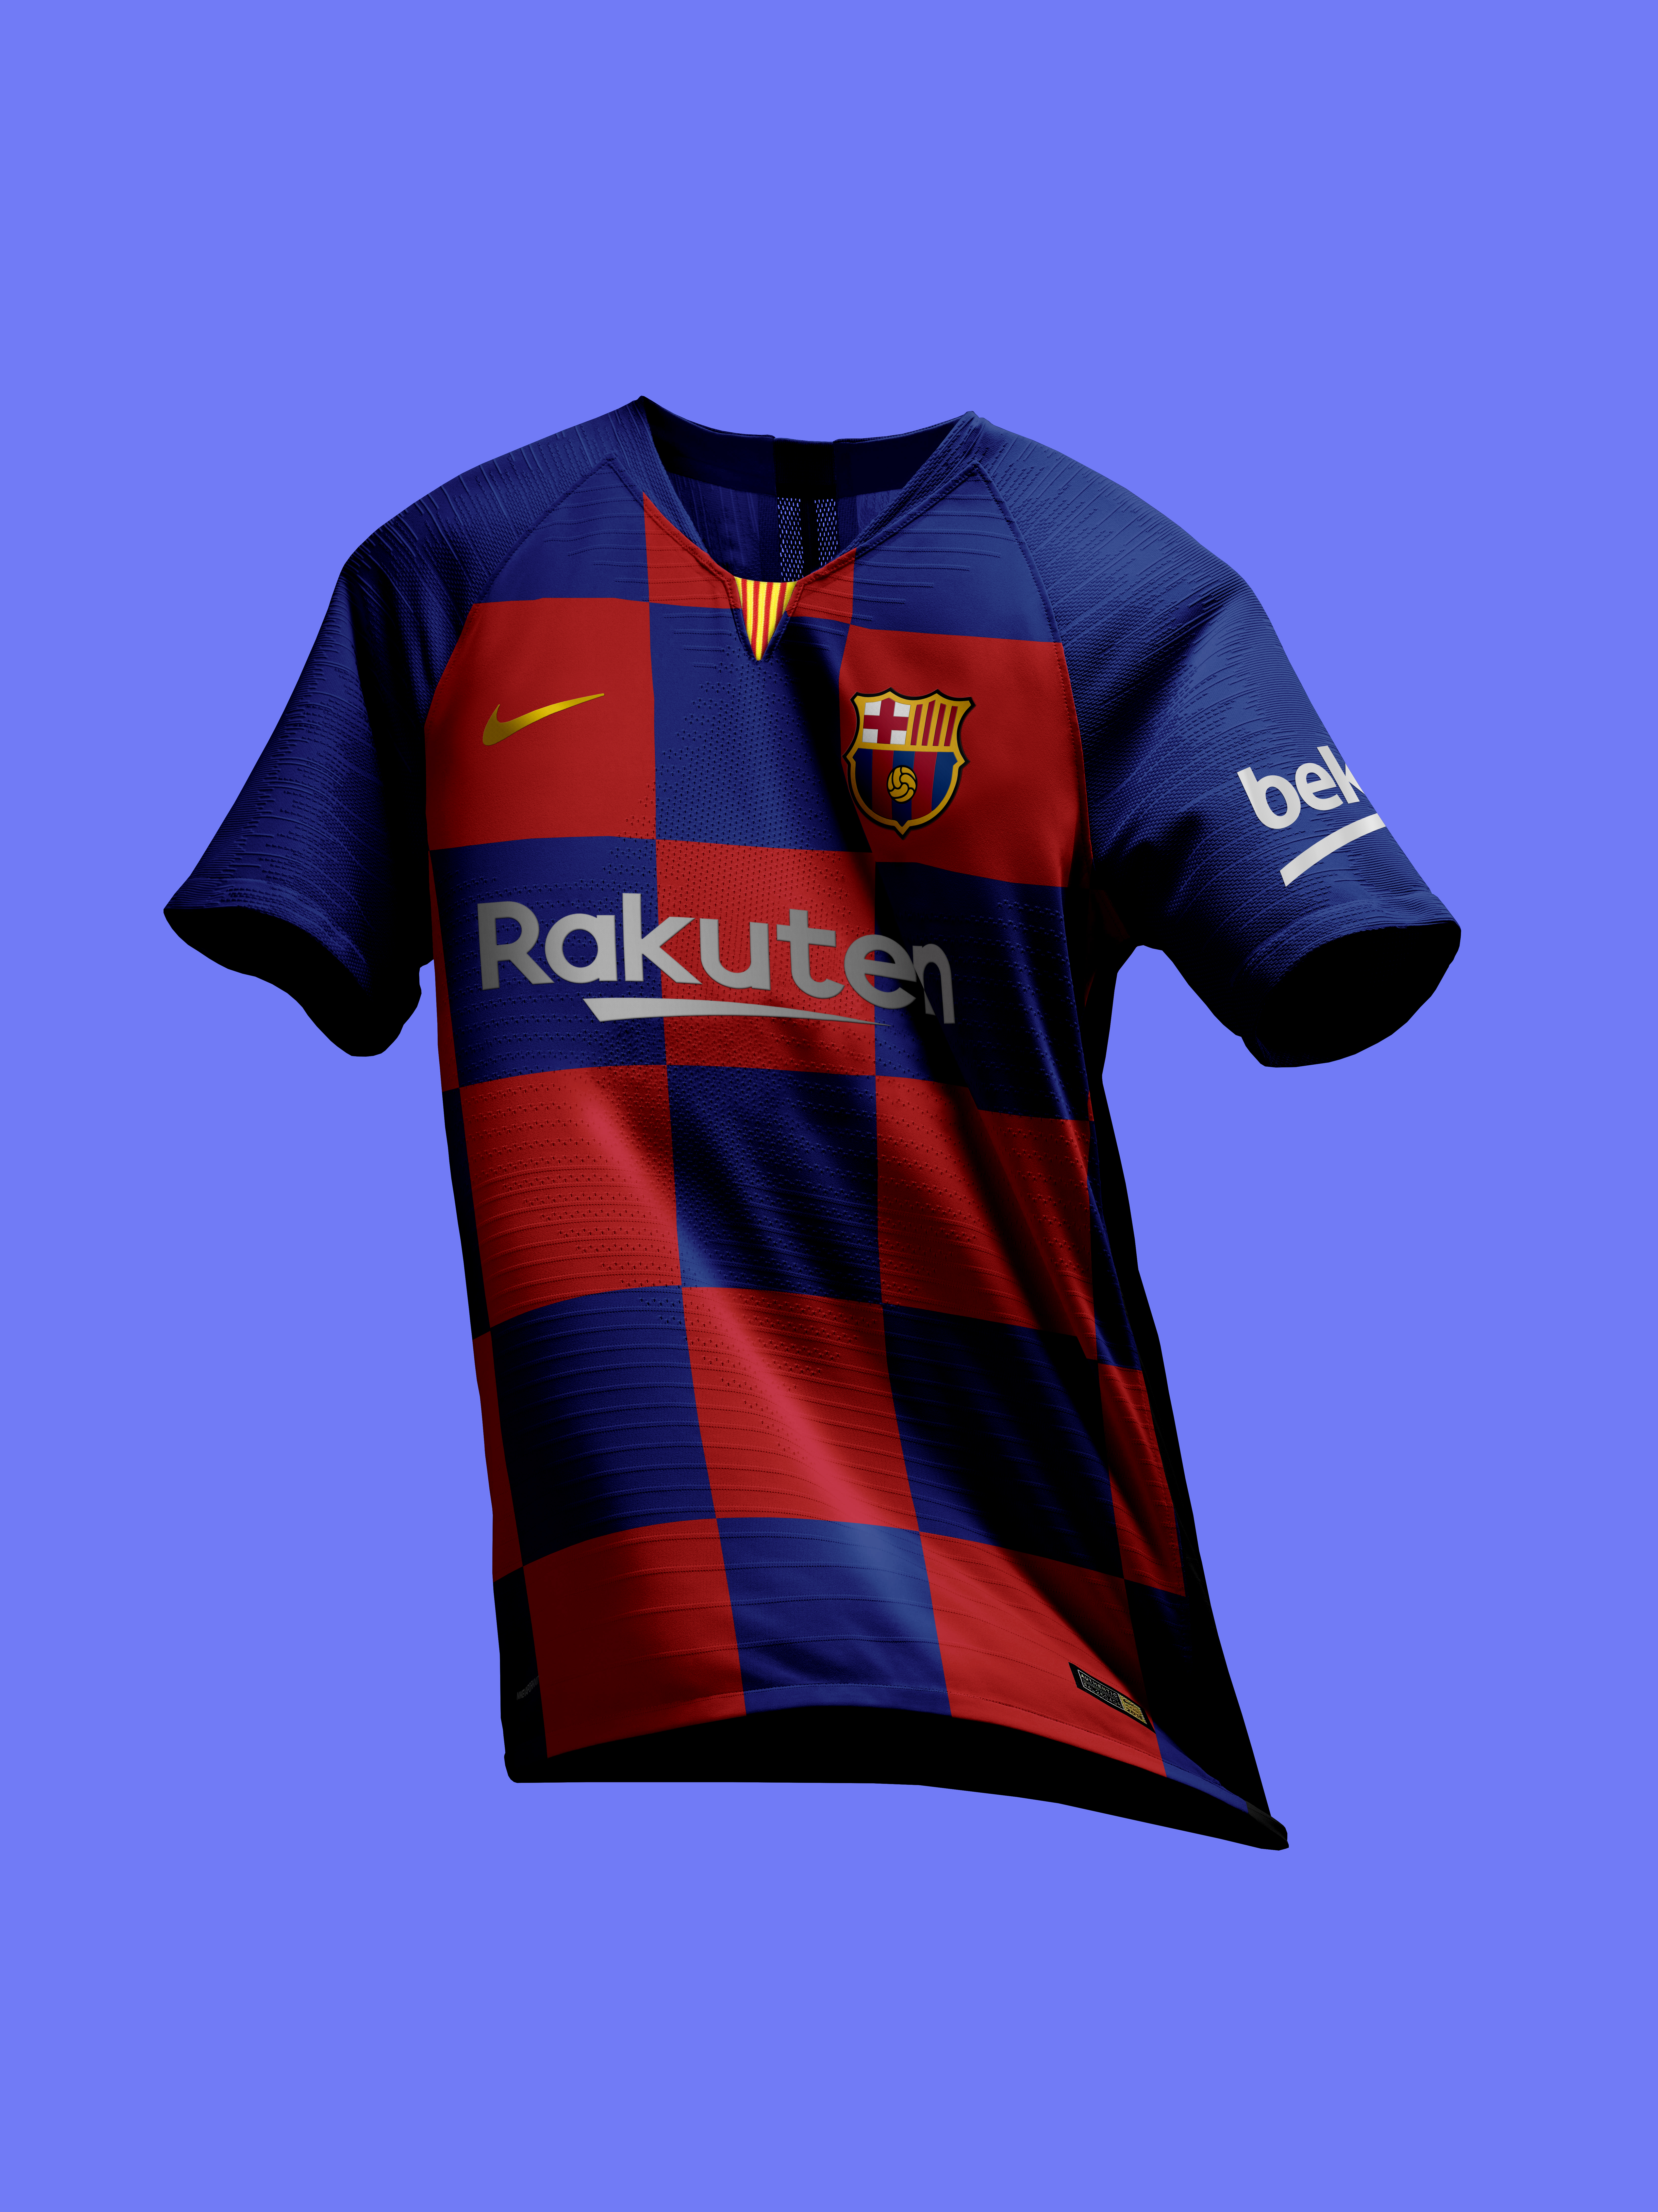 7fa386bd8 Barcelona 19-20 Home Kit Leaked - Footy Headlines. Nike ...